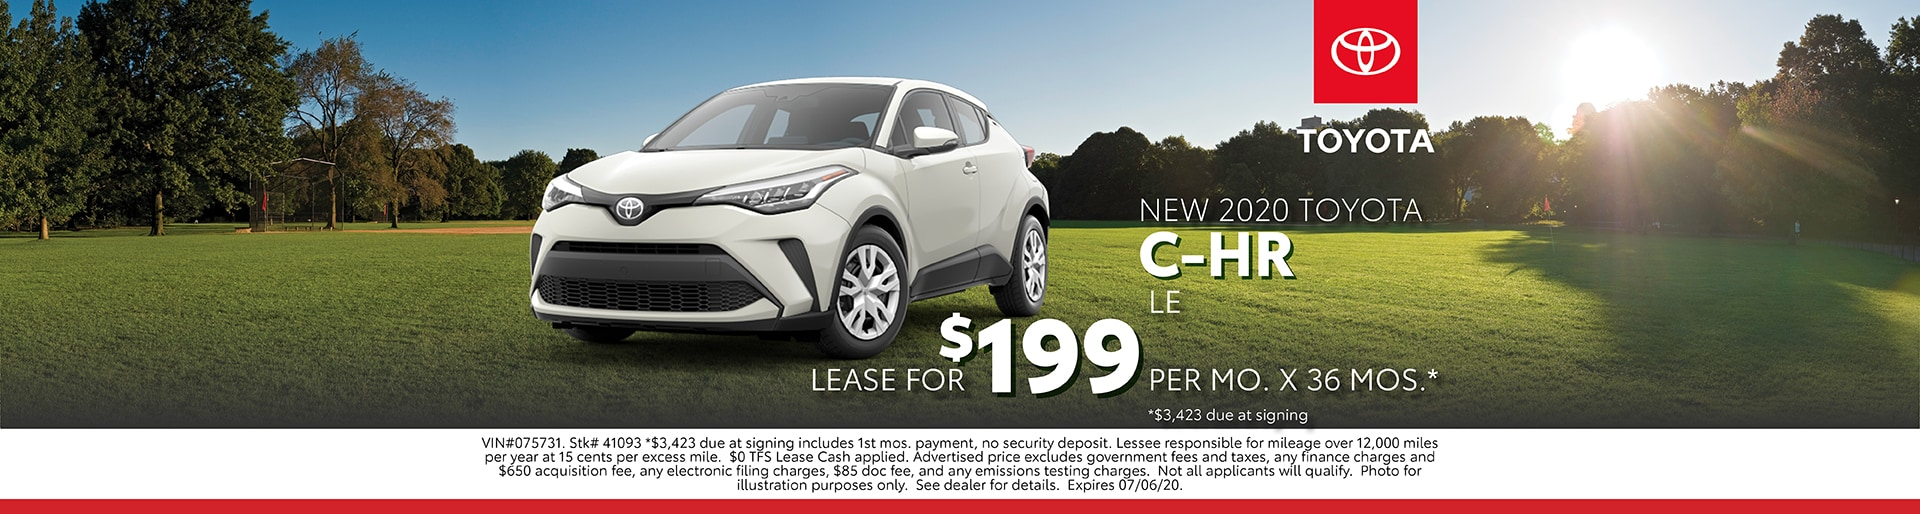 C-HR Lease Offer